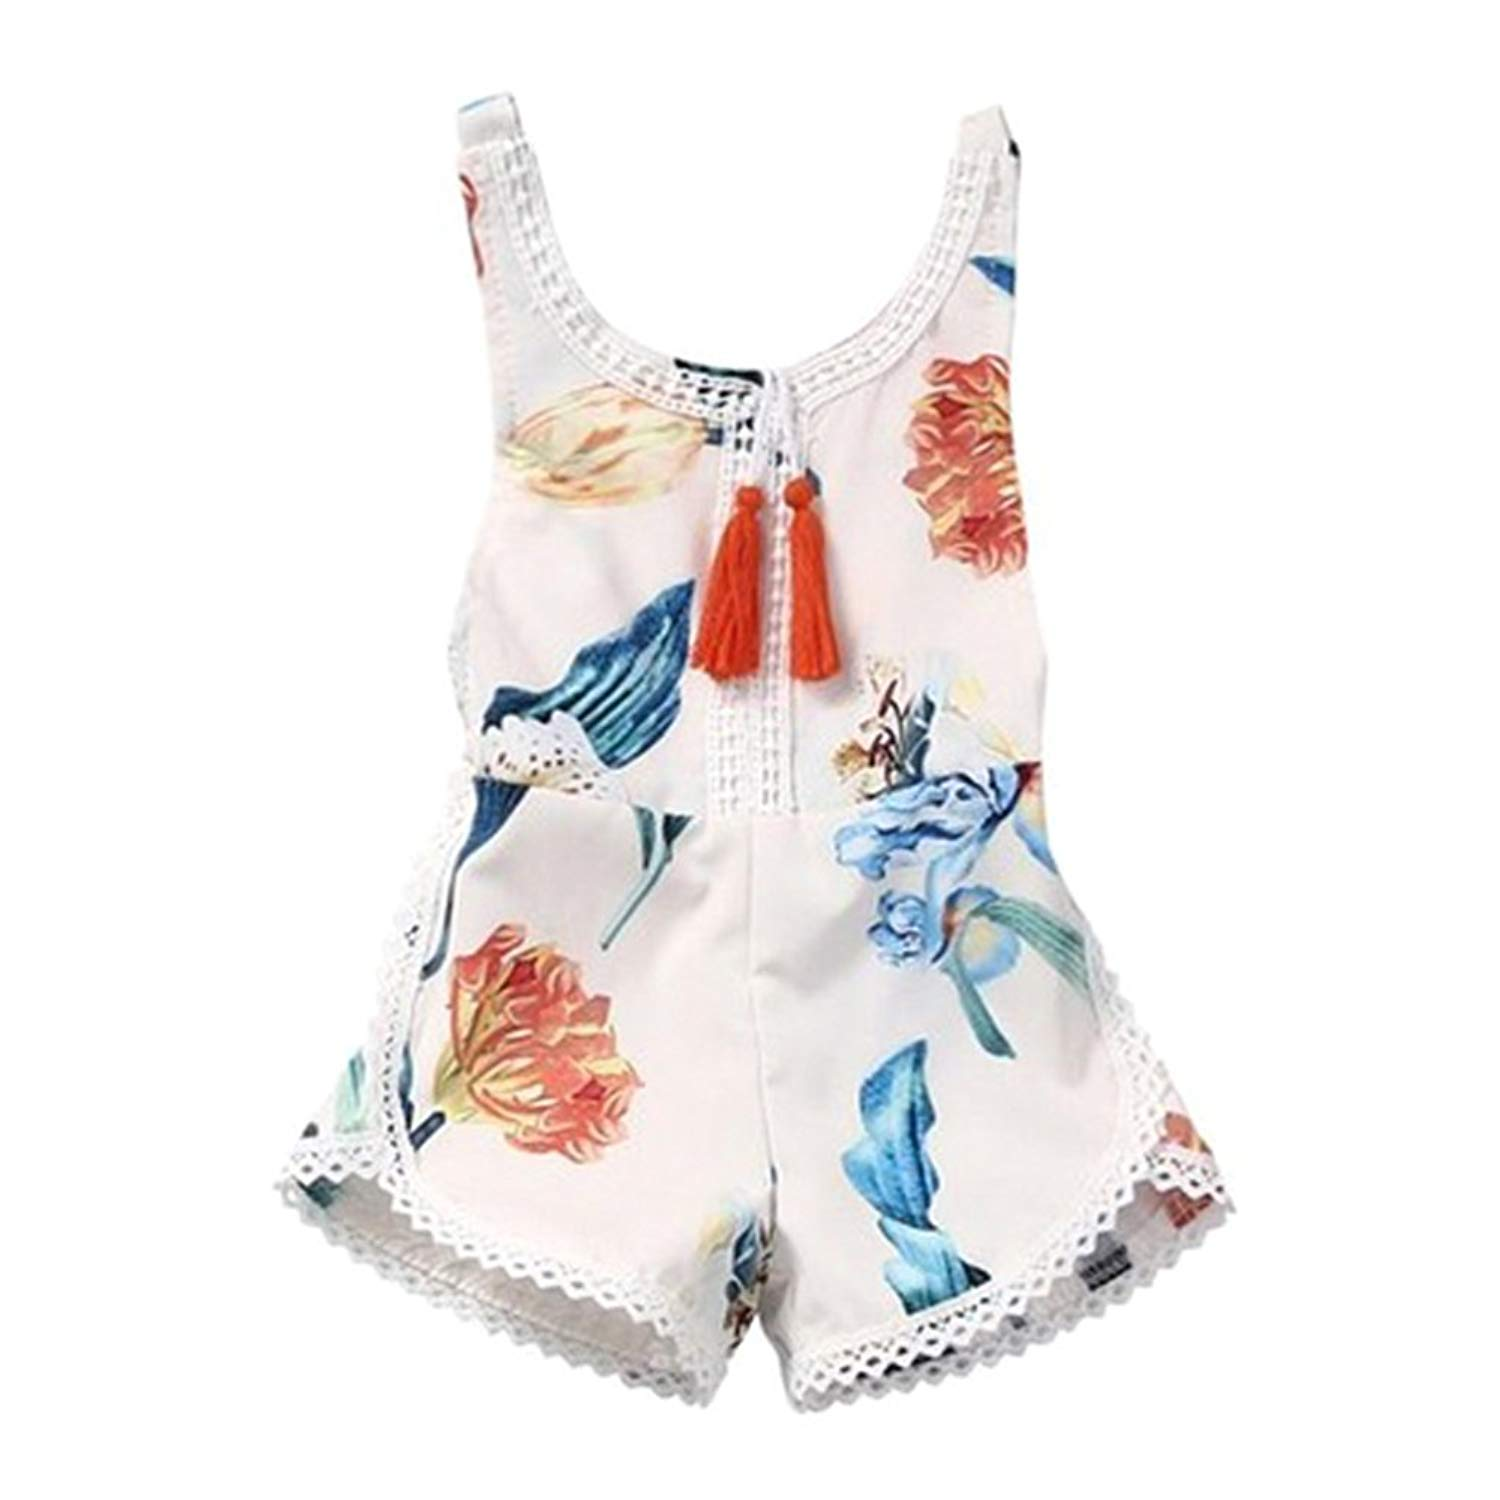 674cd835c Cheap Girl Newborn Outfits